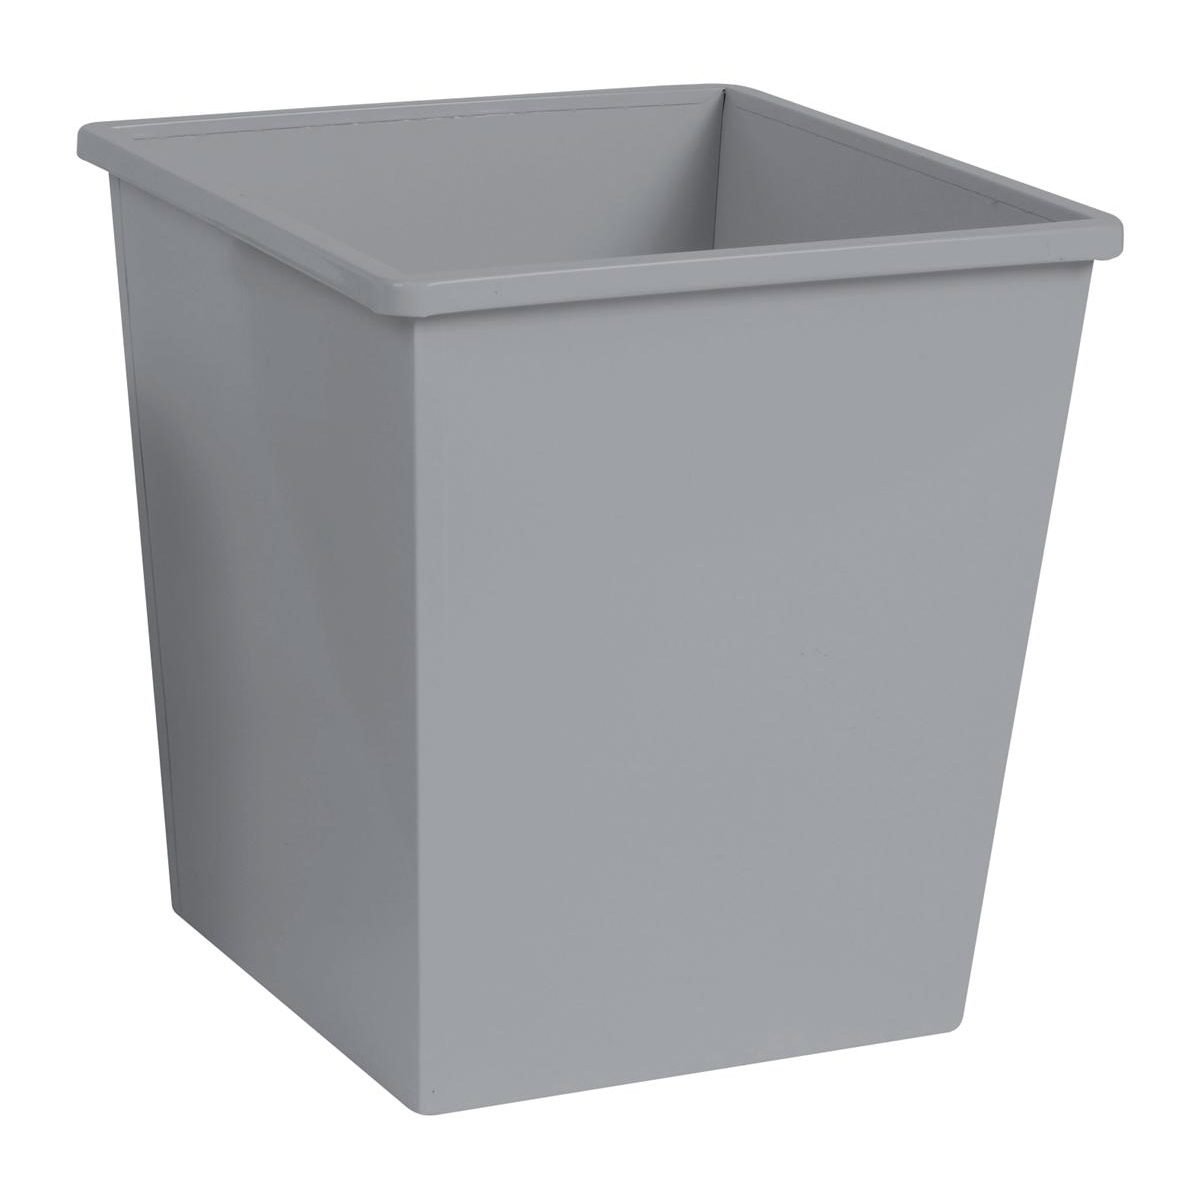 5 Star Office Waste Bin Square Iron Scratch Resistant 325x325x350mm 27 Litres Silver Metallic